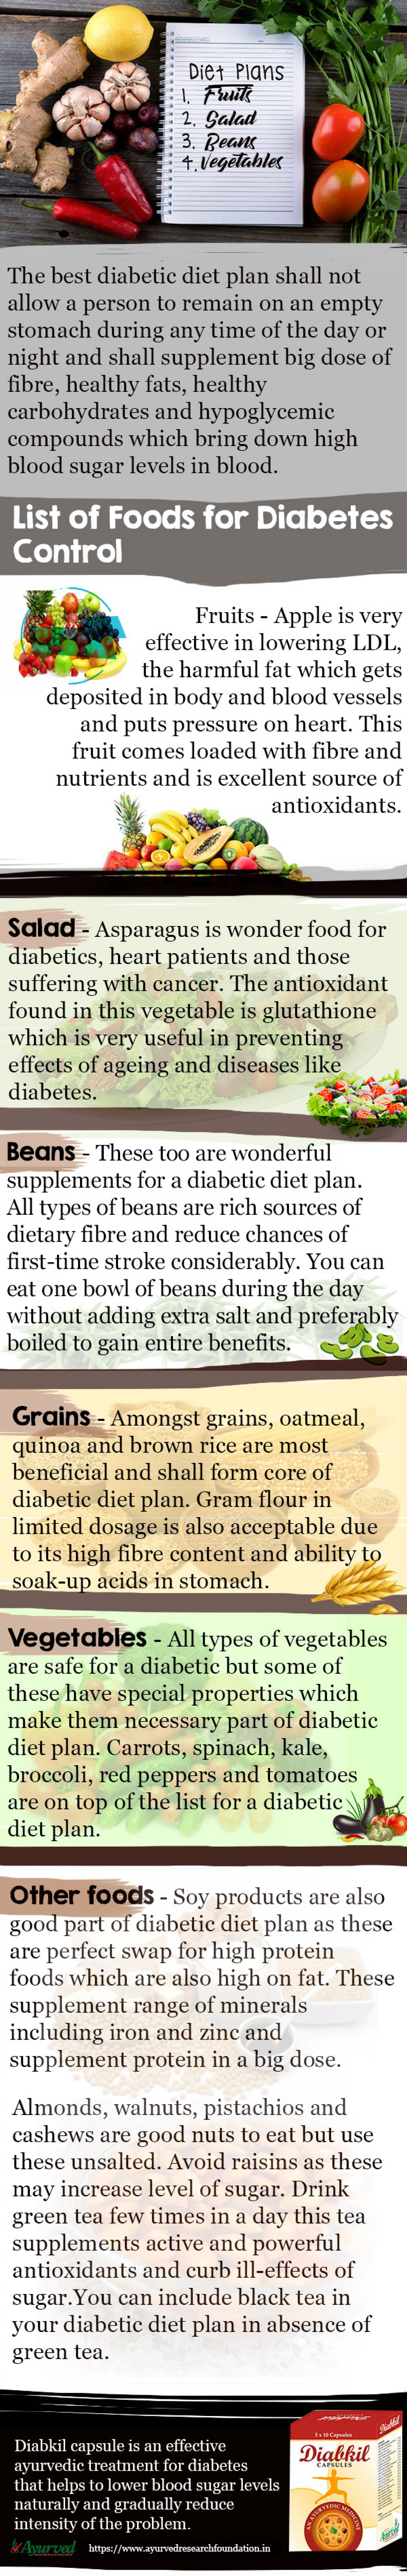 Diabetic Diet Plan Infographic, Healthy Foods for Diabetes Control Infographic